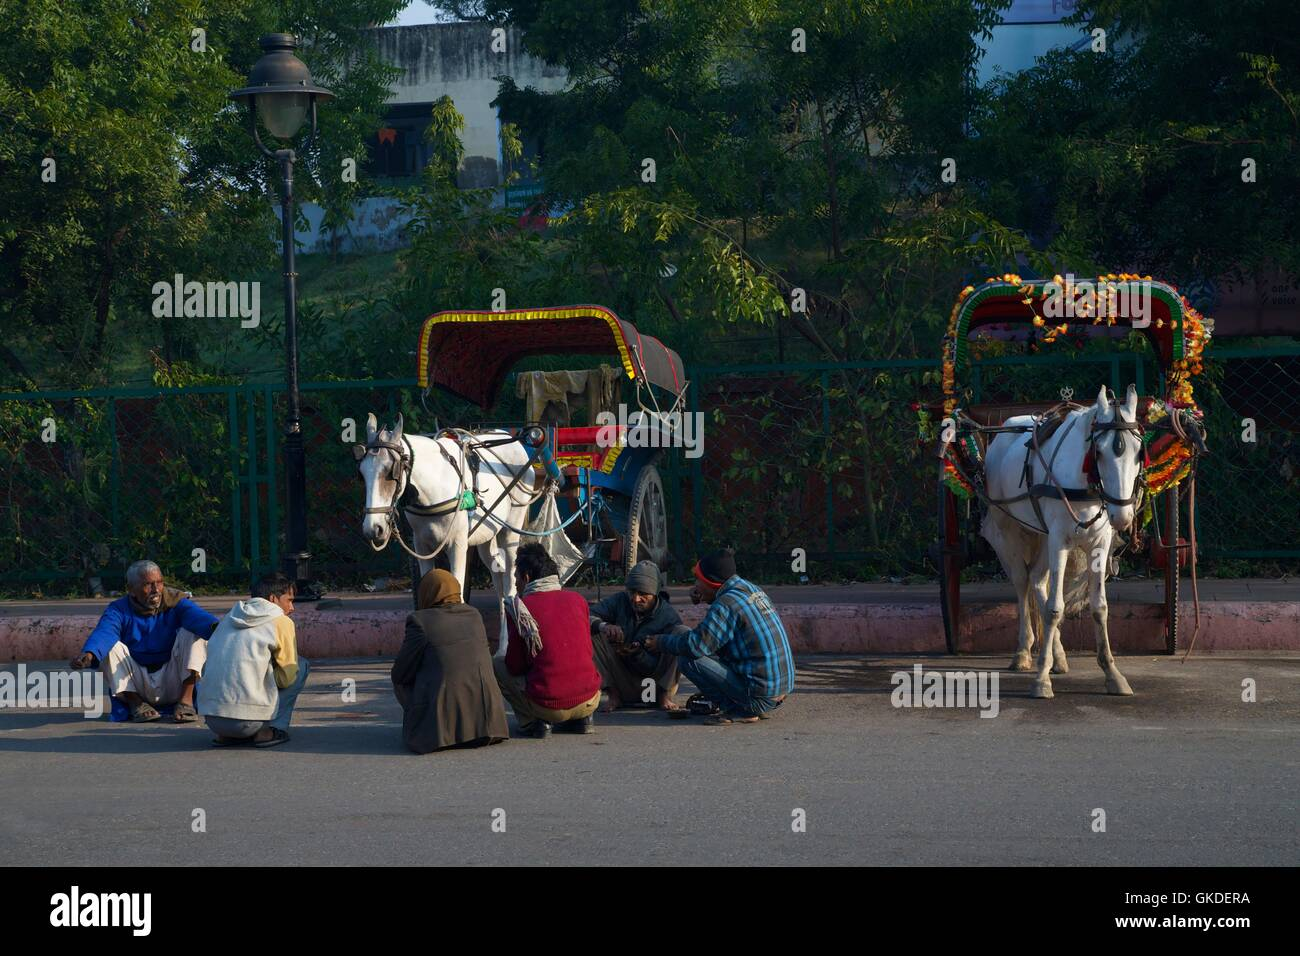 Drivers of horse-drawn carriages, Agra, Uttar Pradesh, India, Asia - Stock Image